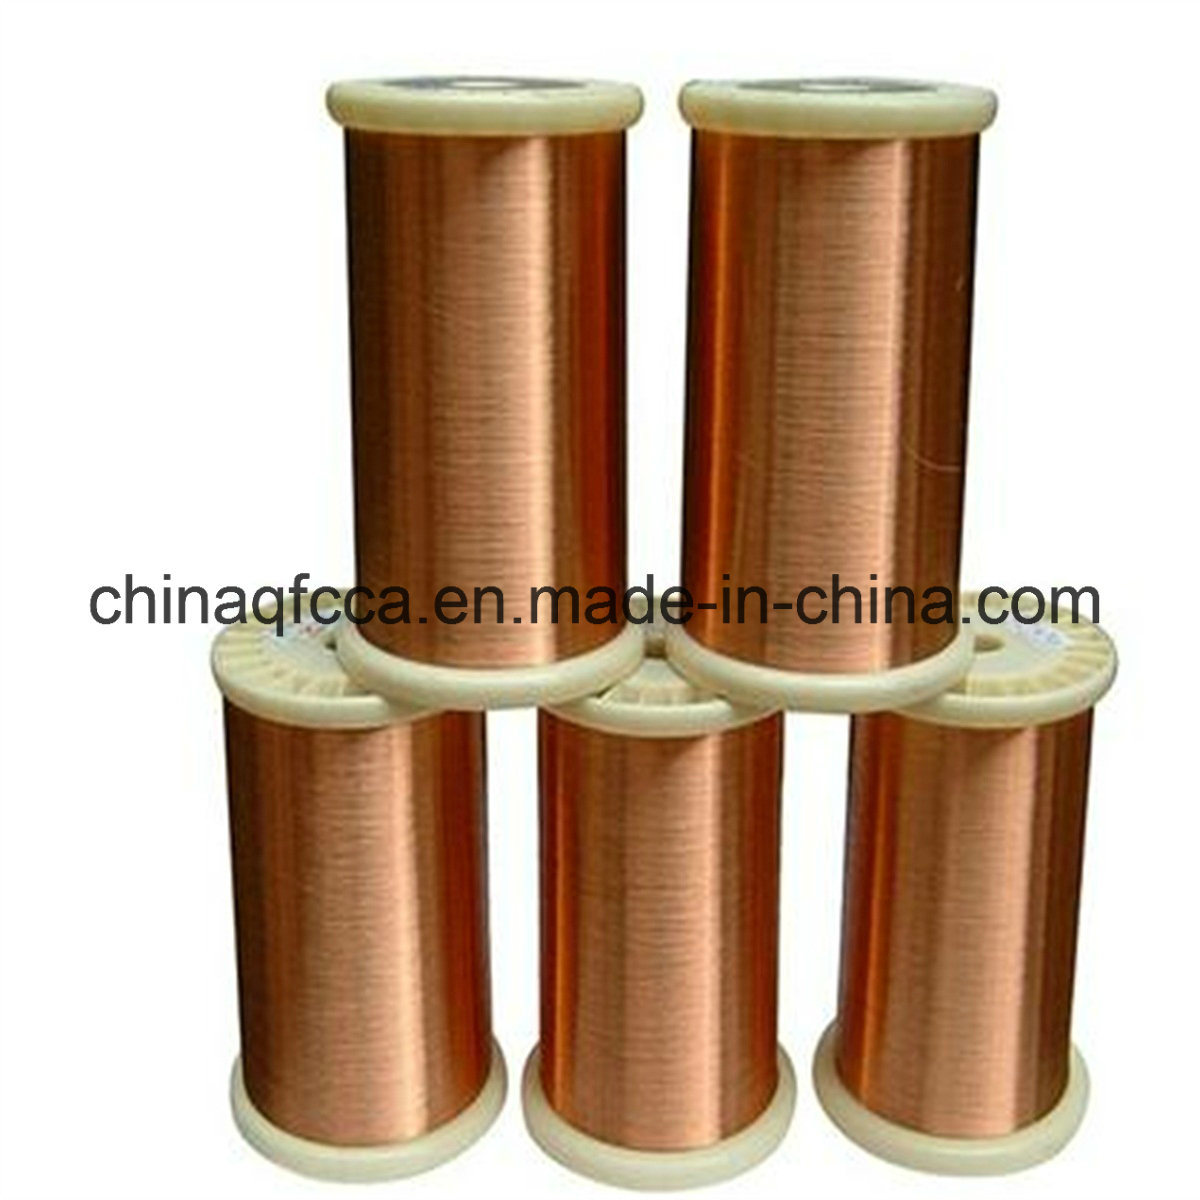 155 Class Swg 36 Enameled Aluminum Wire